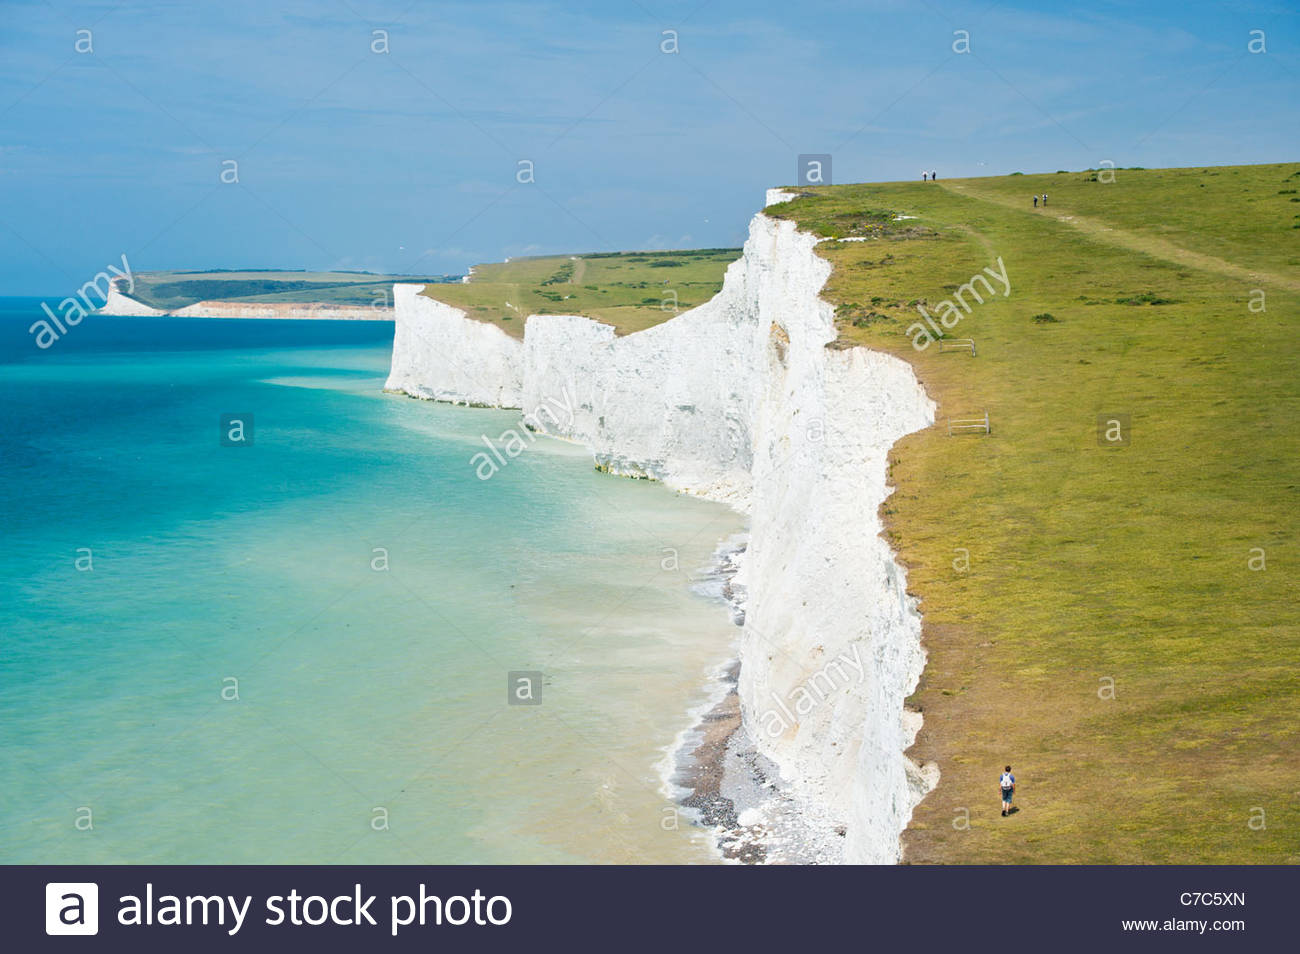 Walkers on the South Downs Way at the Seven Sisters cliffs - Stock Image